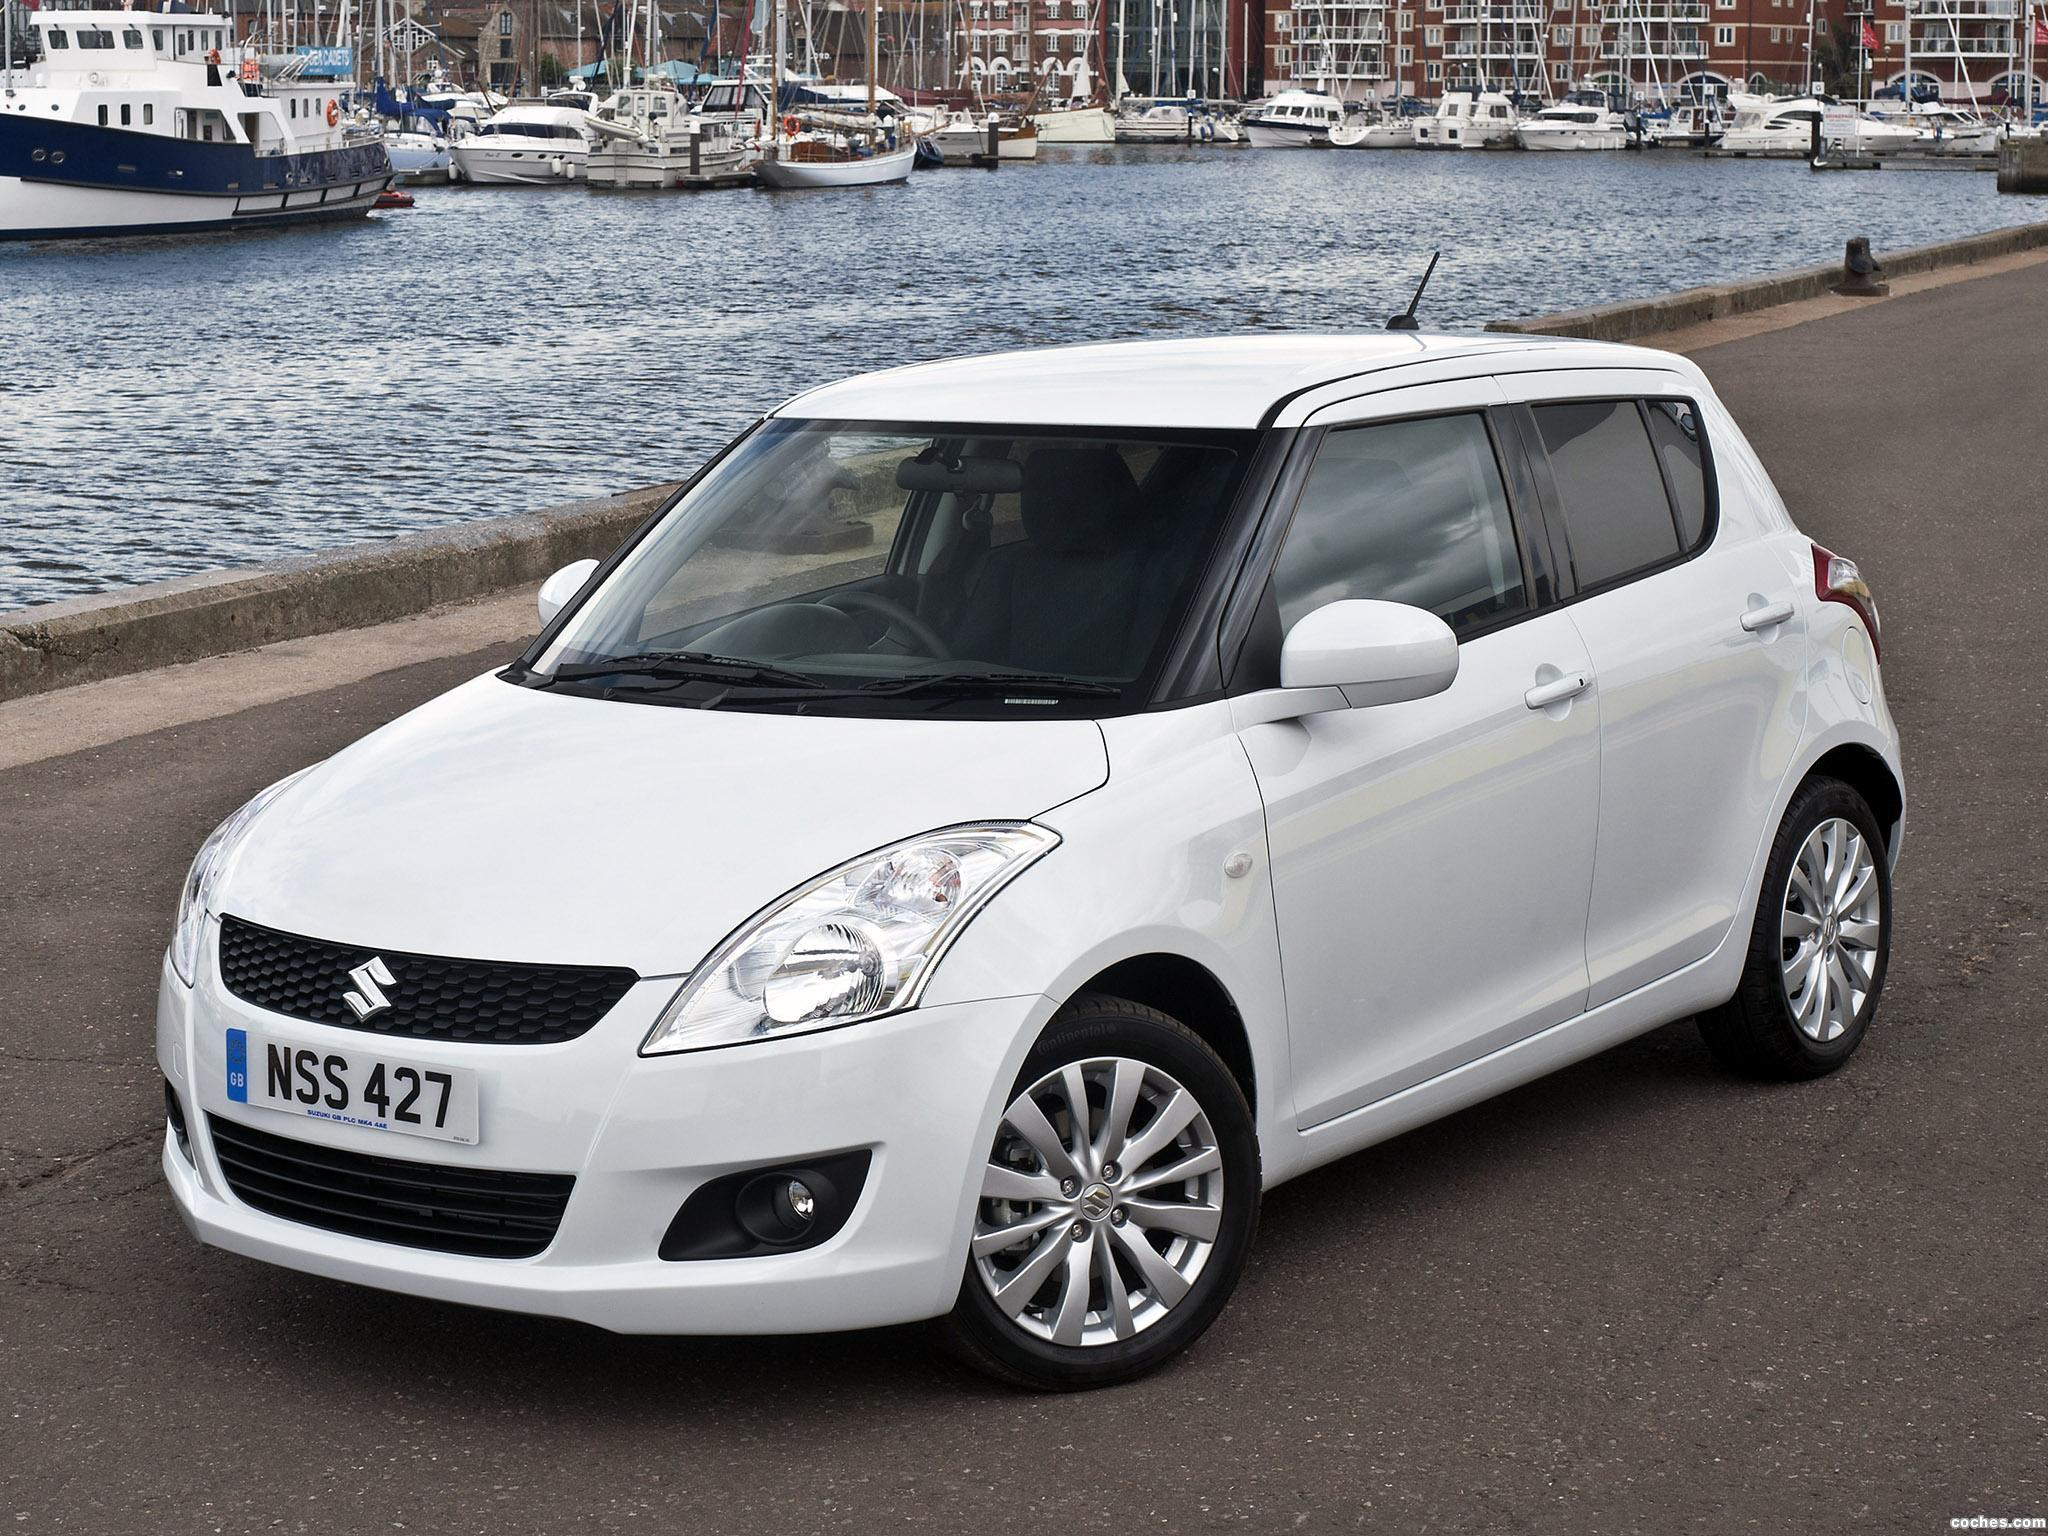 Foto 0 de Suzuki Swift SZ4 UK 2010